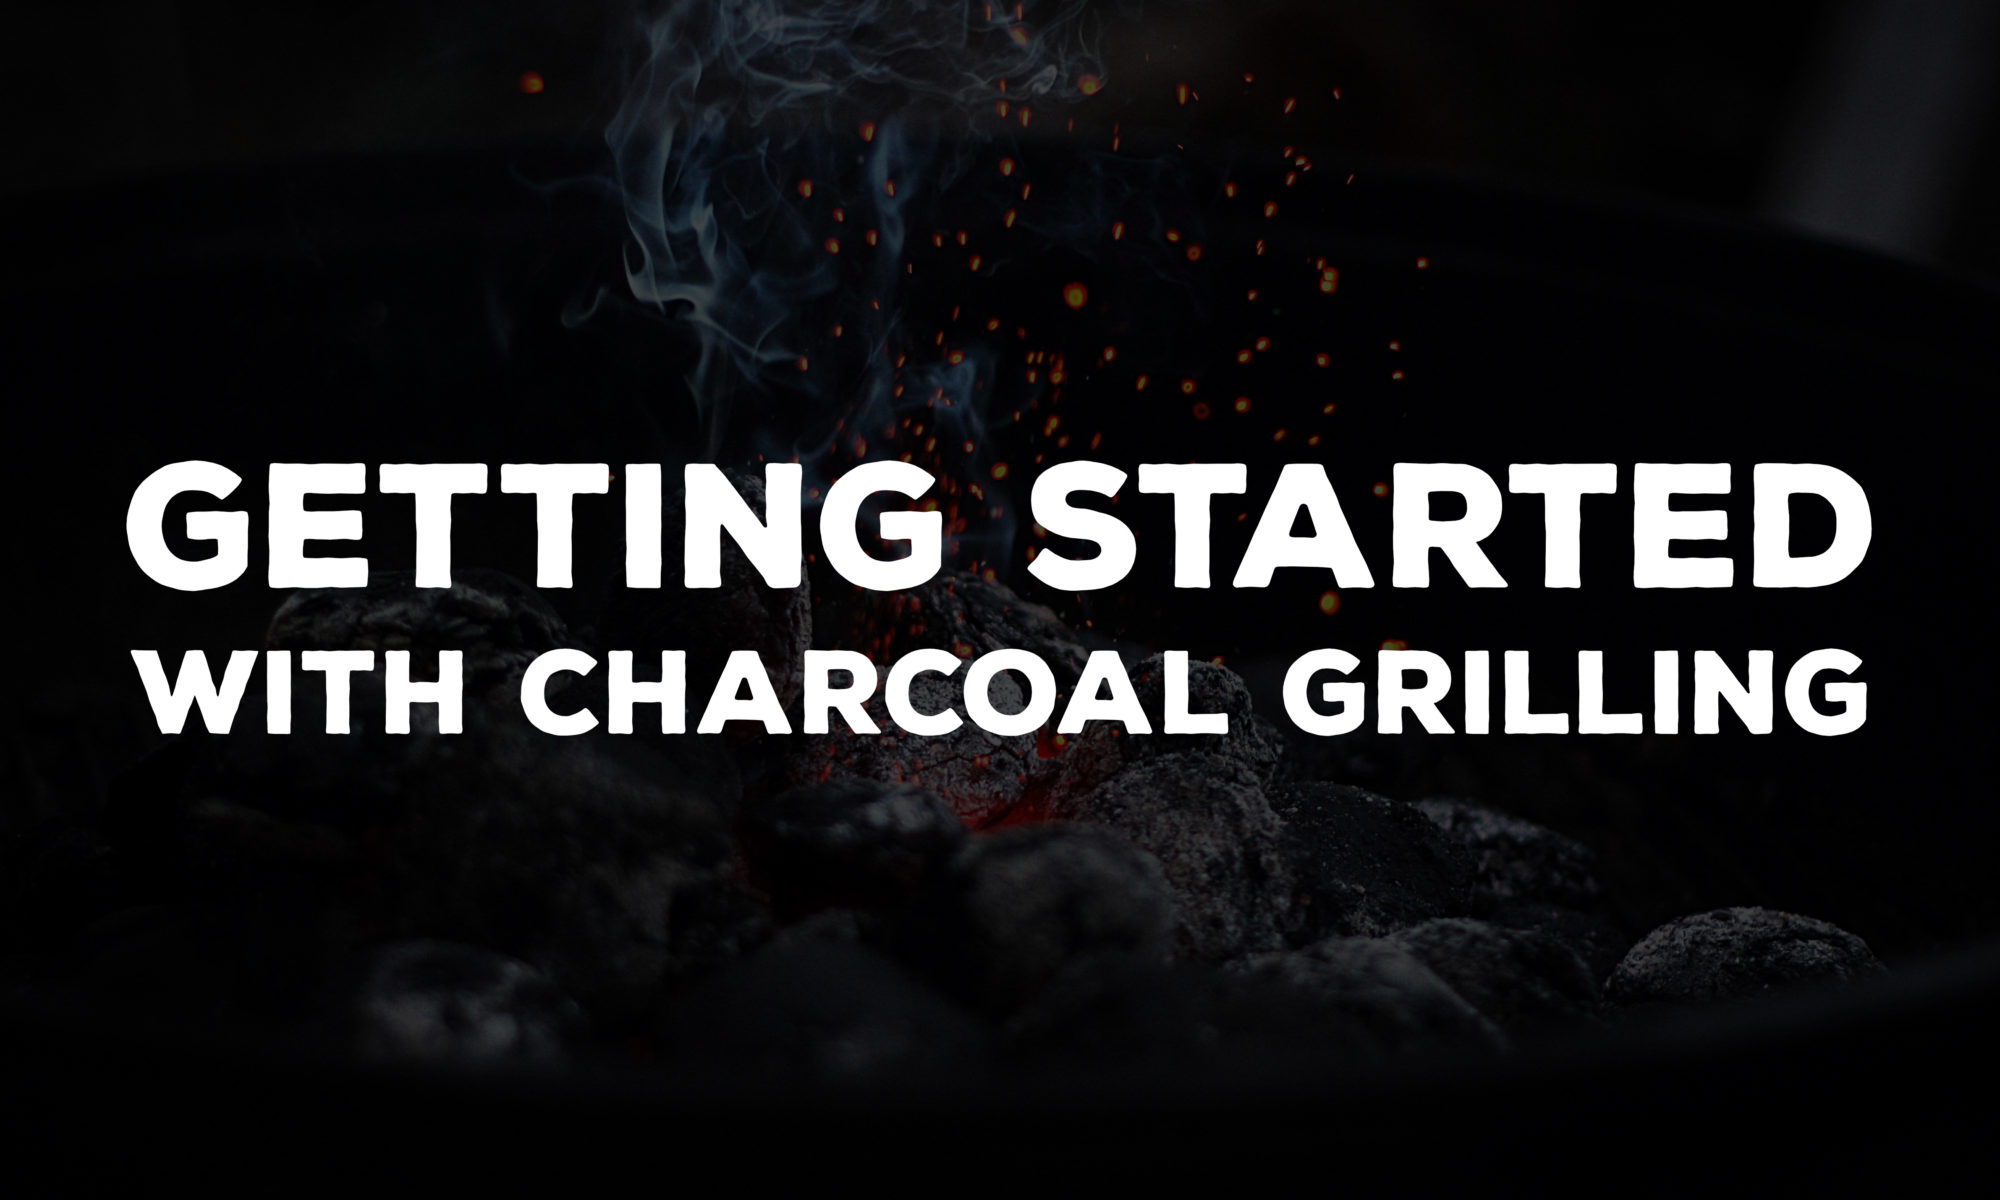 Get Started with Charcoal Grilling